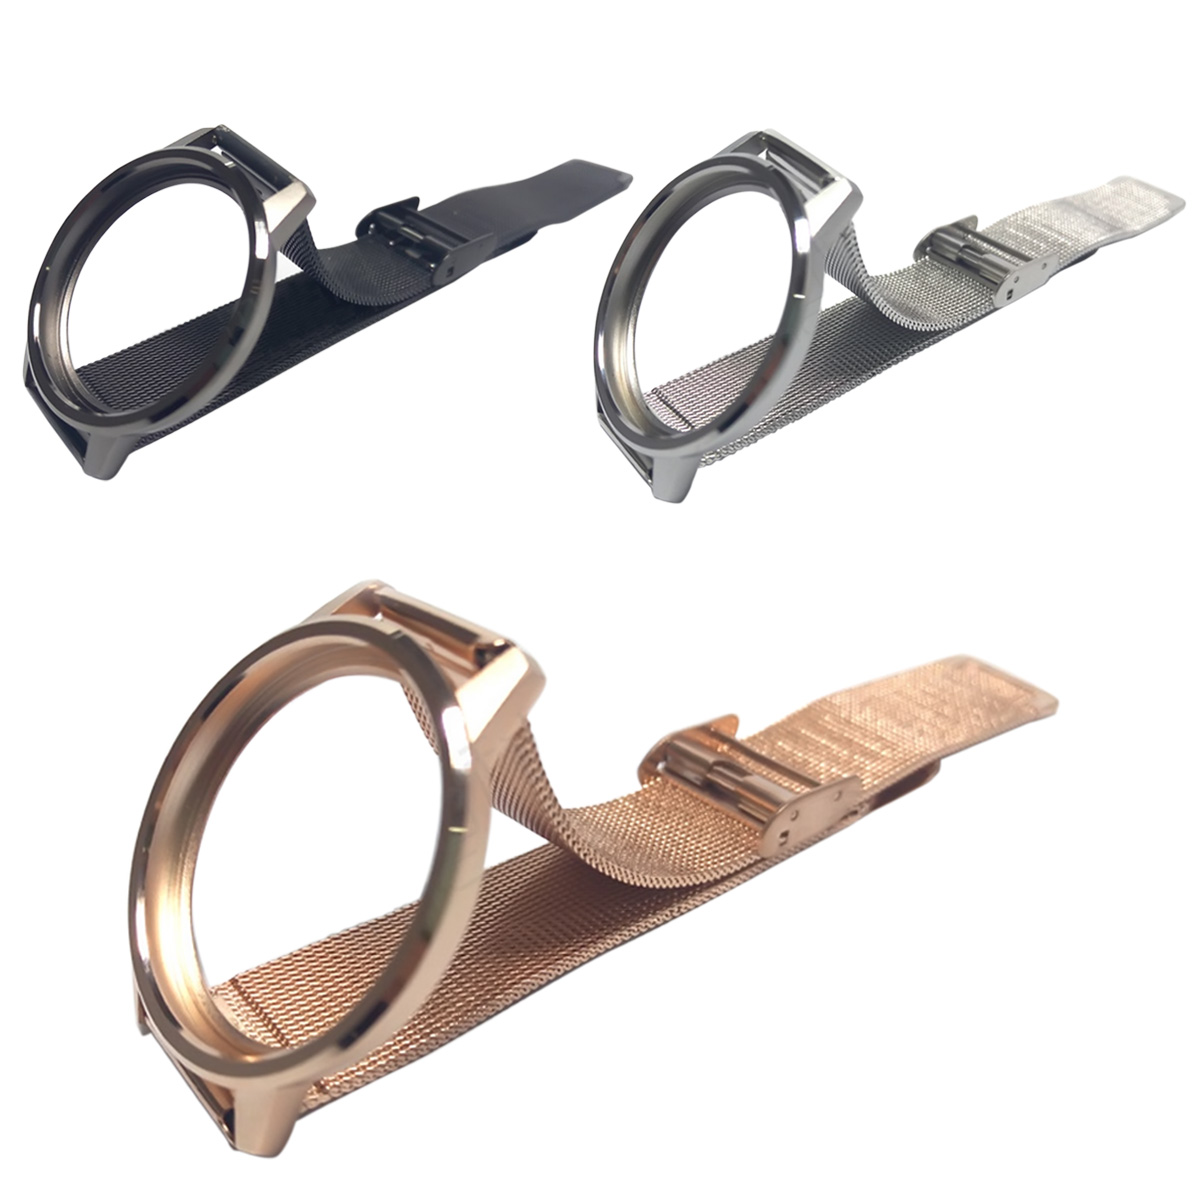 Stainless-Steel-Replacement-Watch-Band-Strap-for-font-b-Misfit-b-font-font-b-Shine-b